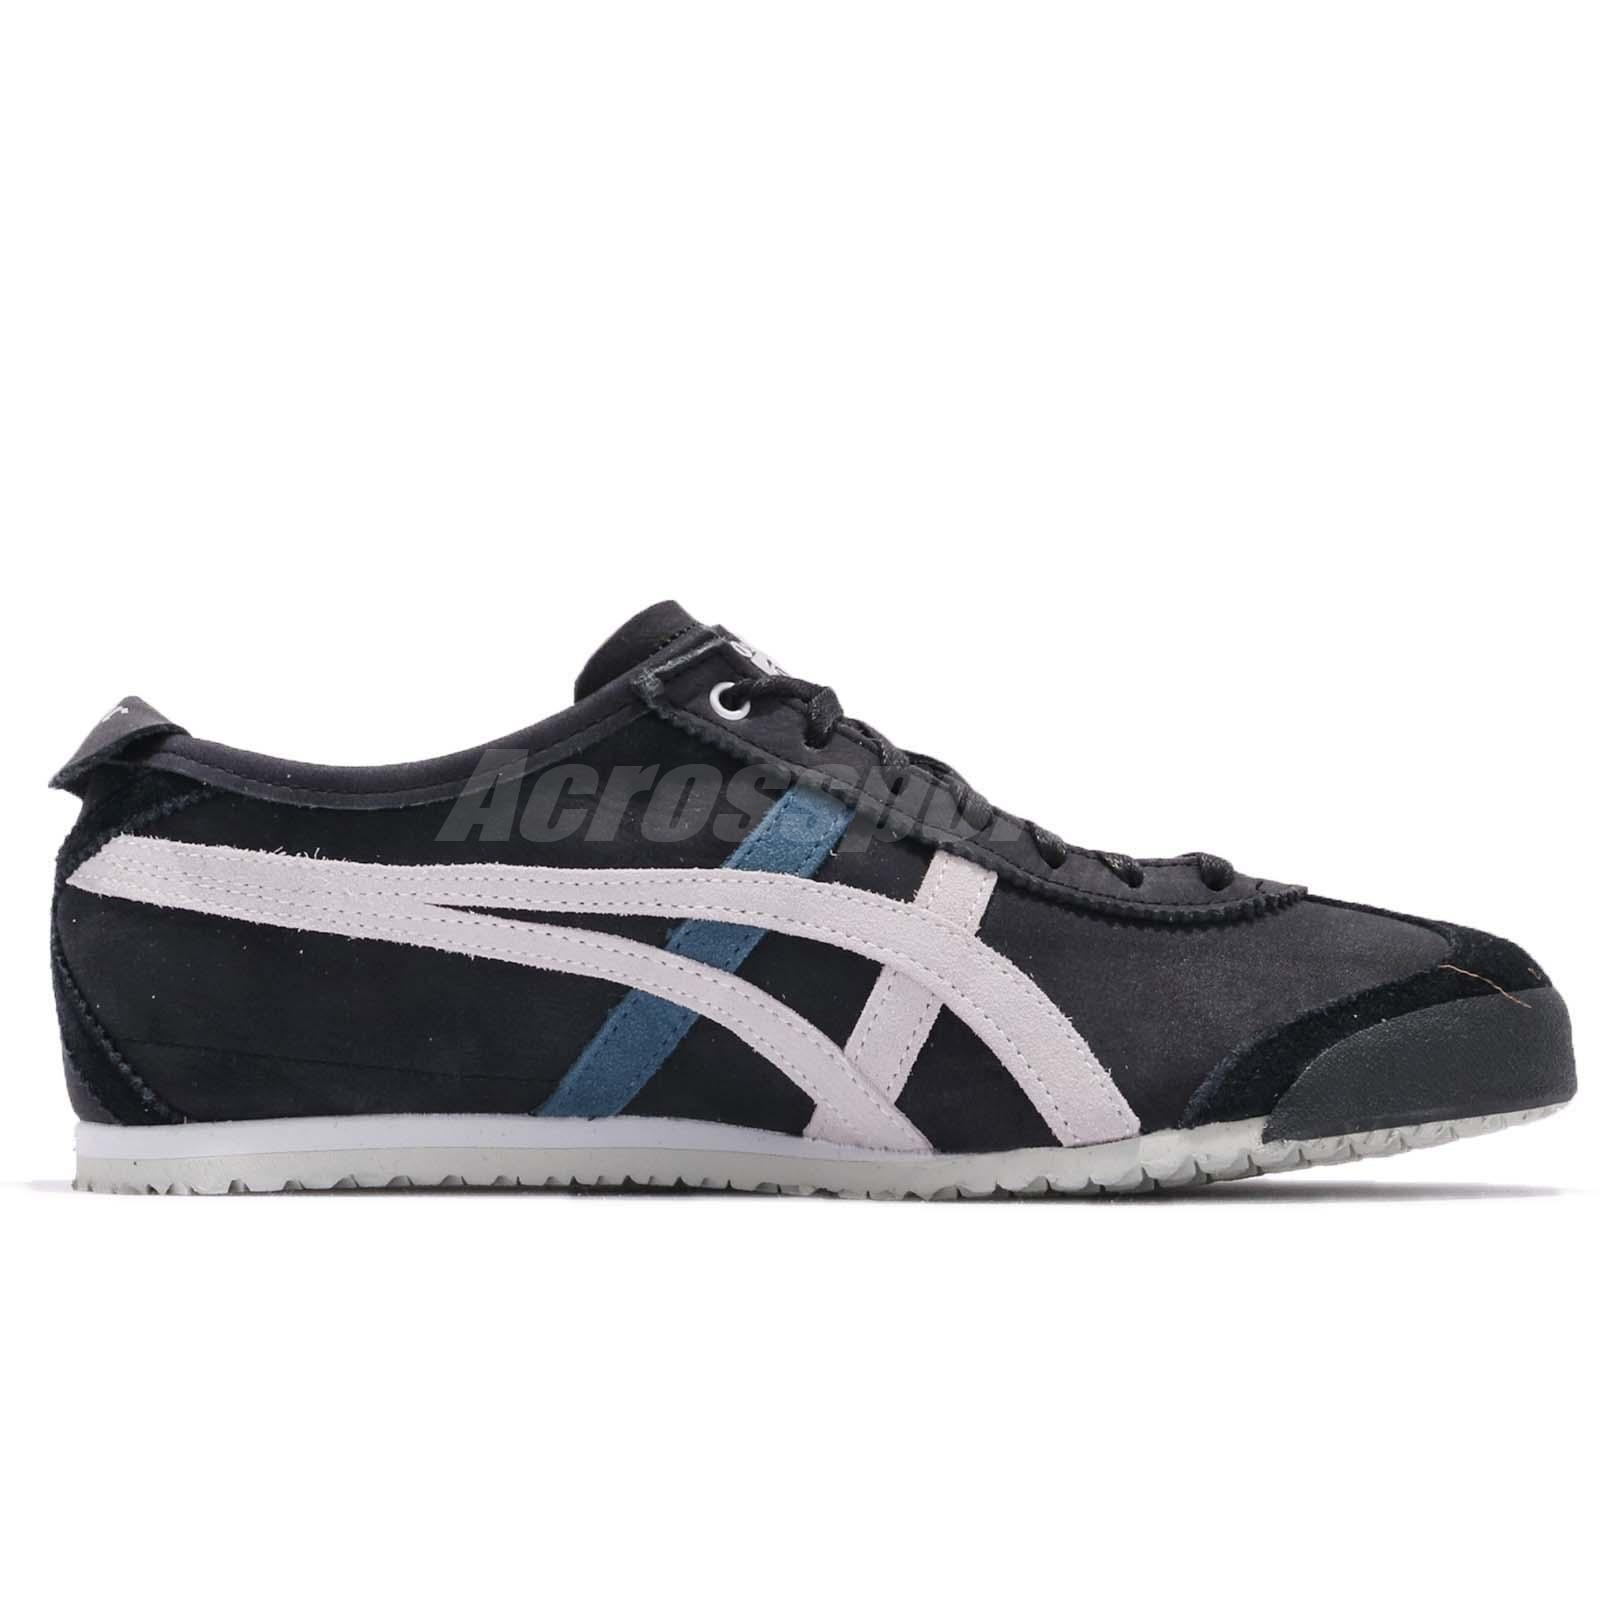 onitsuka tiger mexico 66 black glacier grey quality letra en